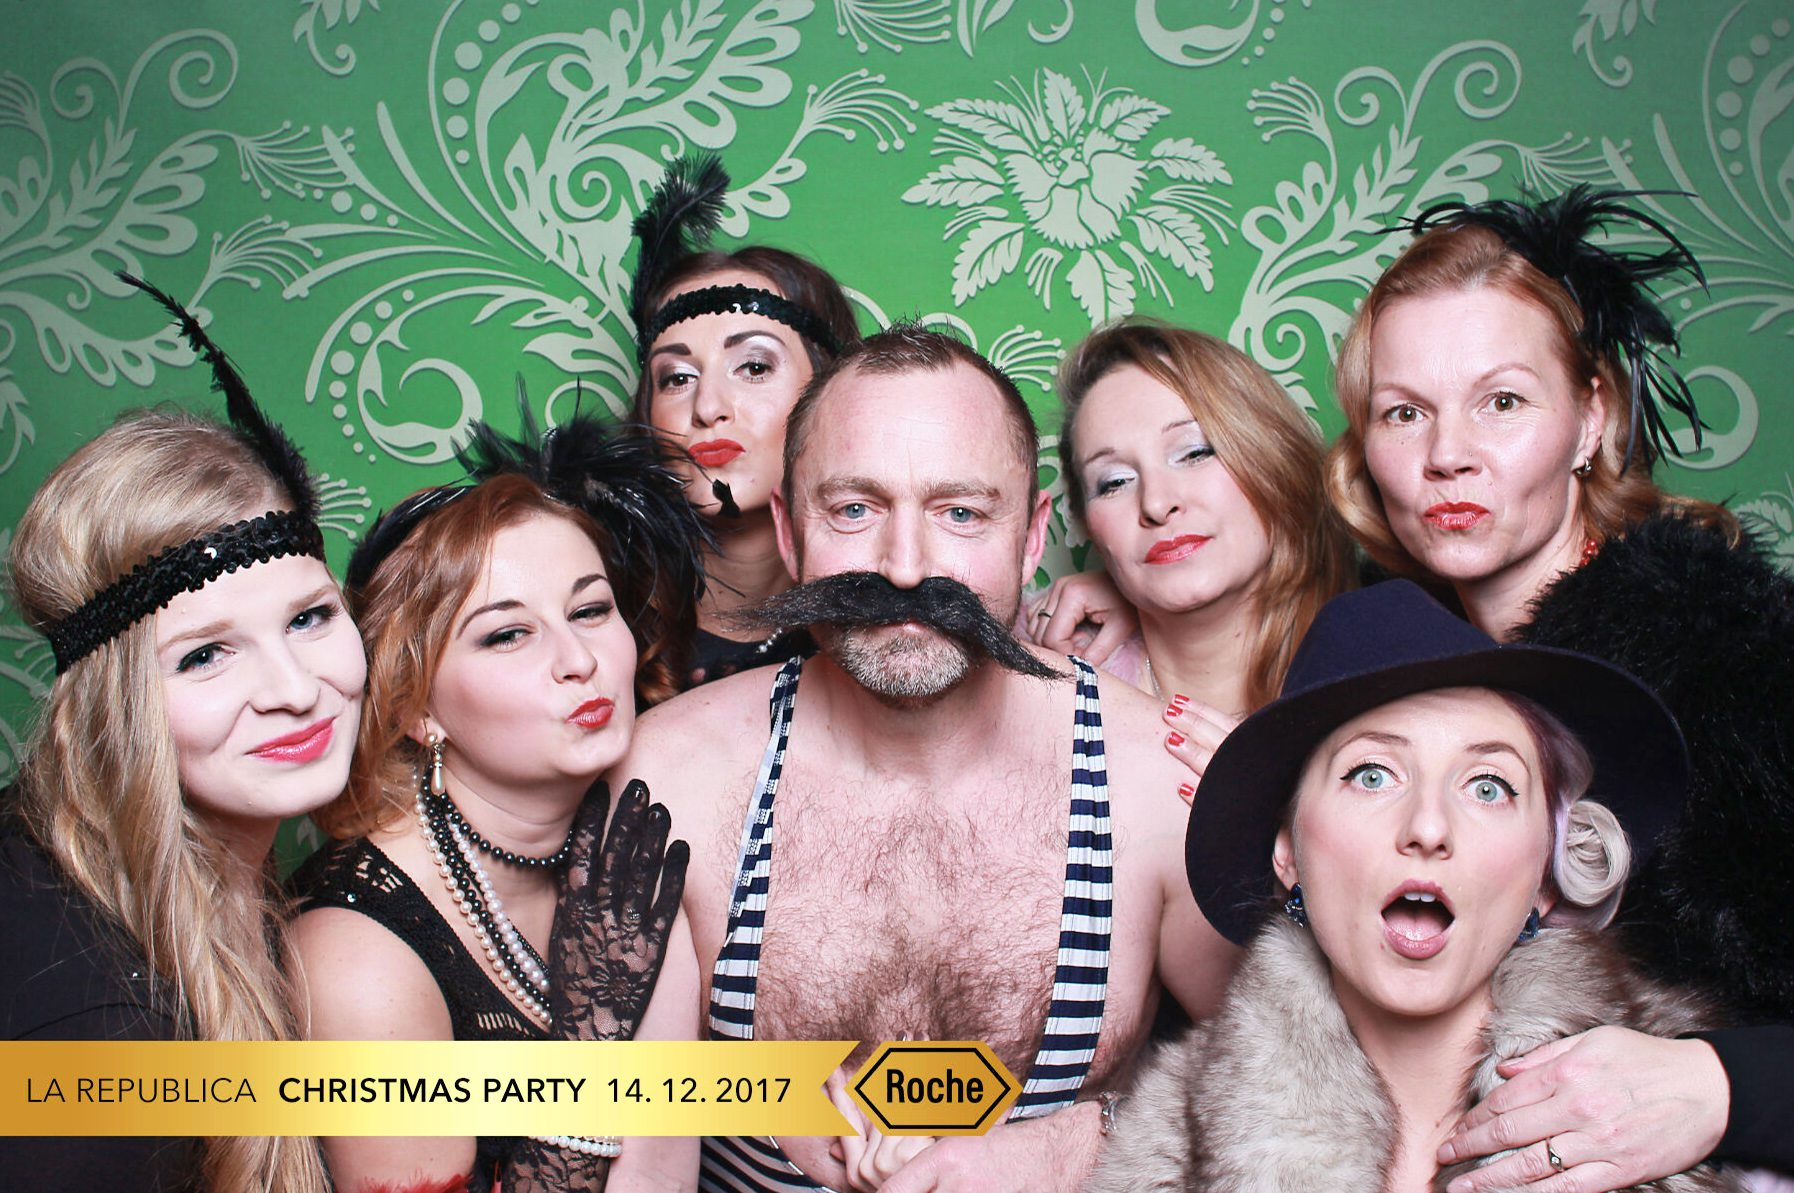 fotokoutek-roche-christmas-party-14-12-2017-364537